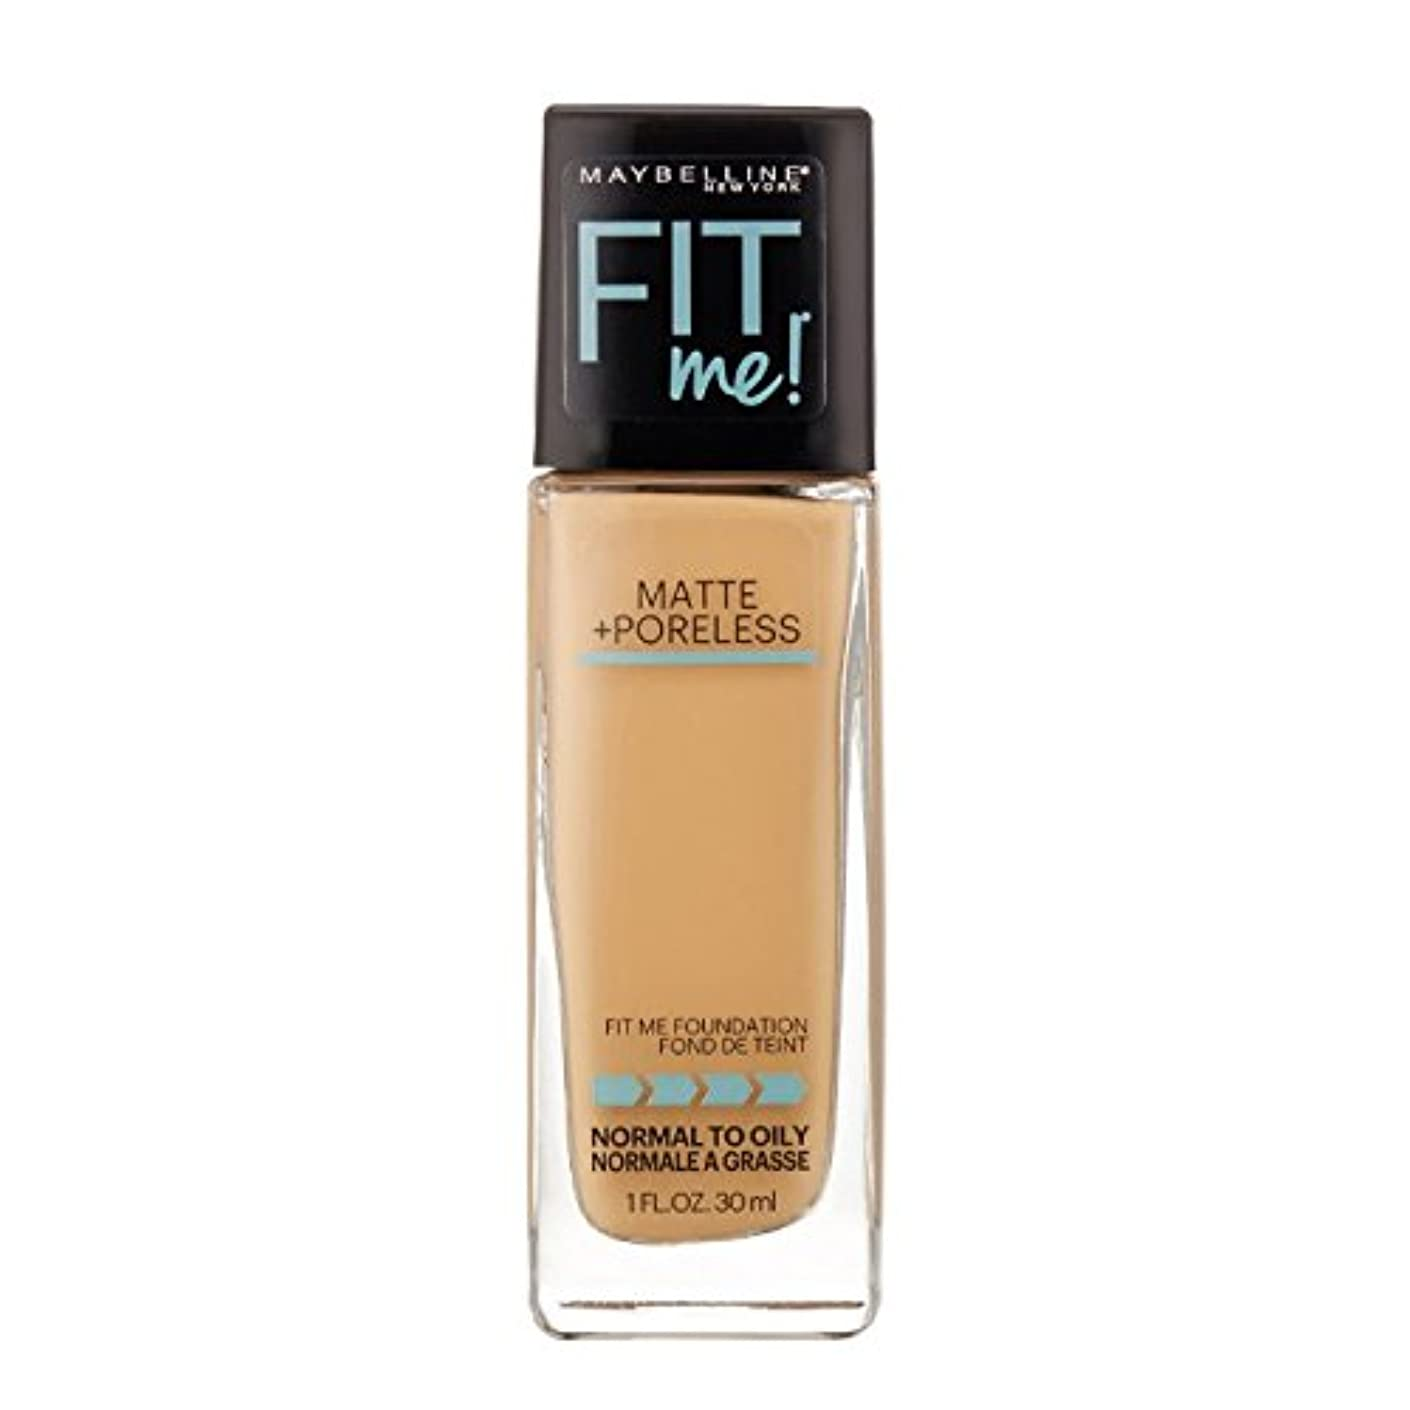 リム特異なサミュエル(3 Pack) MAYBELLINE Fit Me! Matte + Poreless Foundation - Natural Buff 230 (並行輸入品)